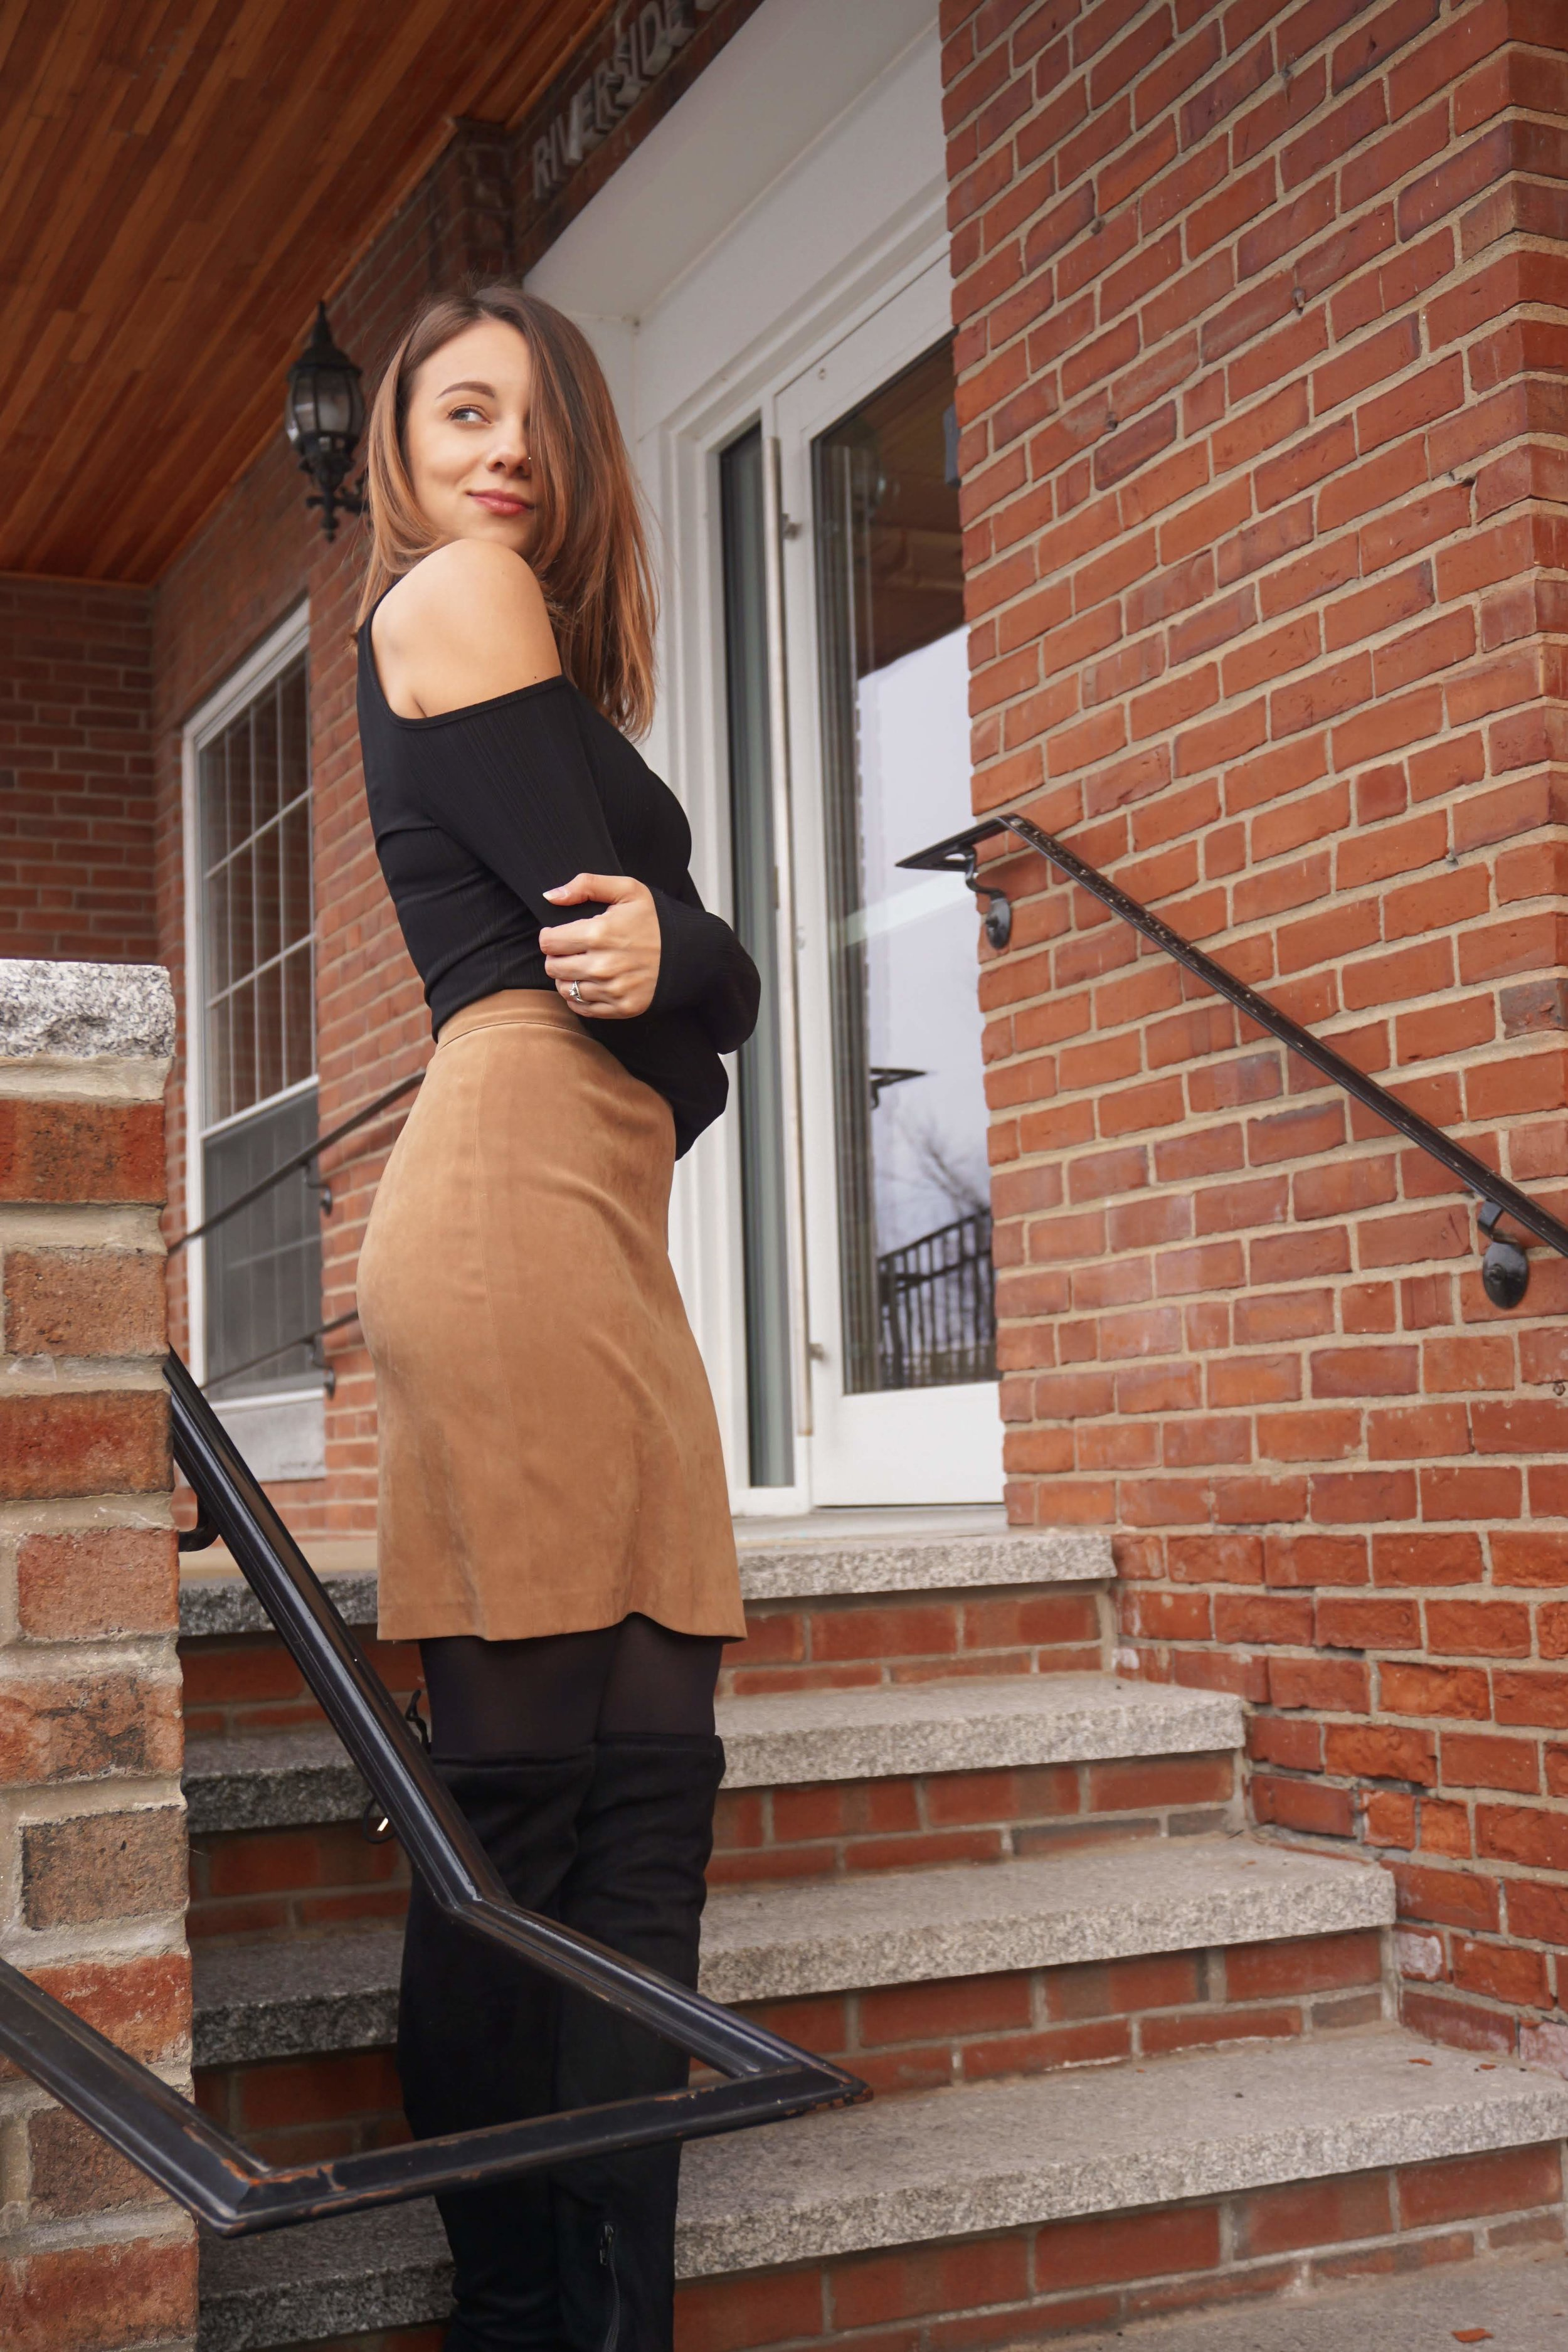 Blogger a cute romantic outfit while posing on the stairs near a brick building.